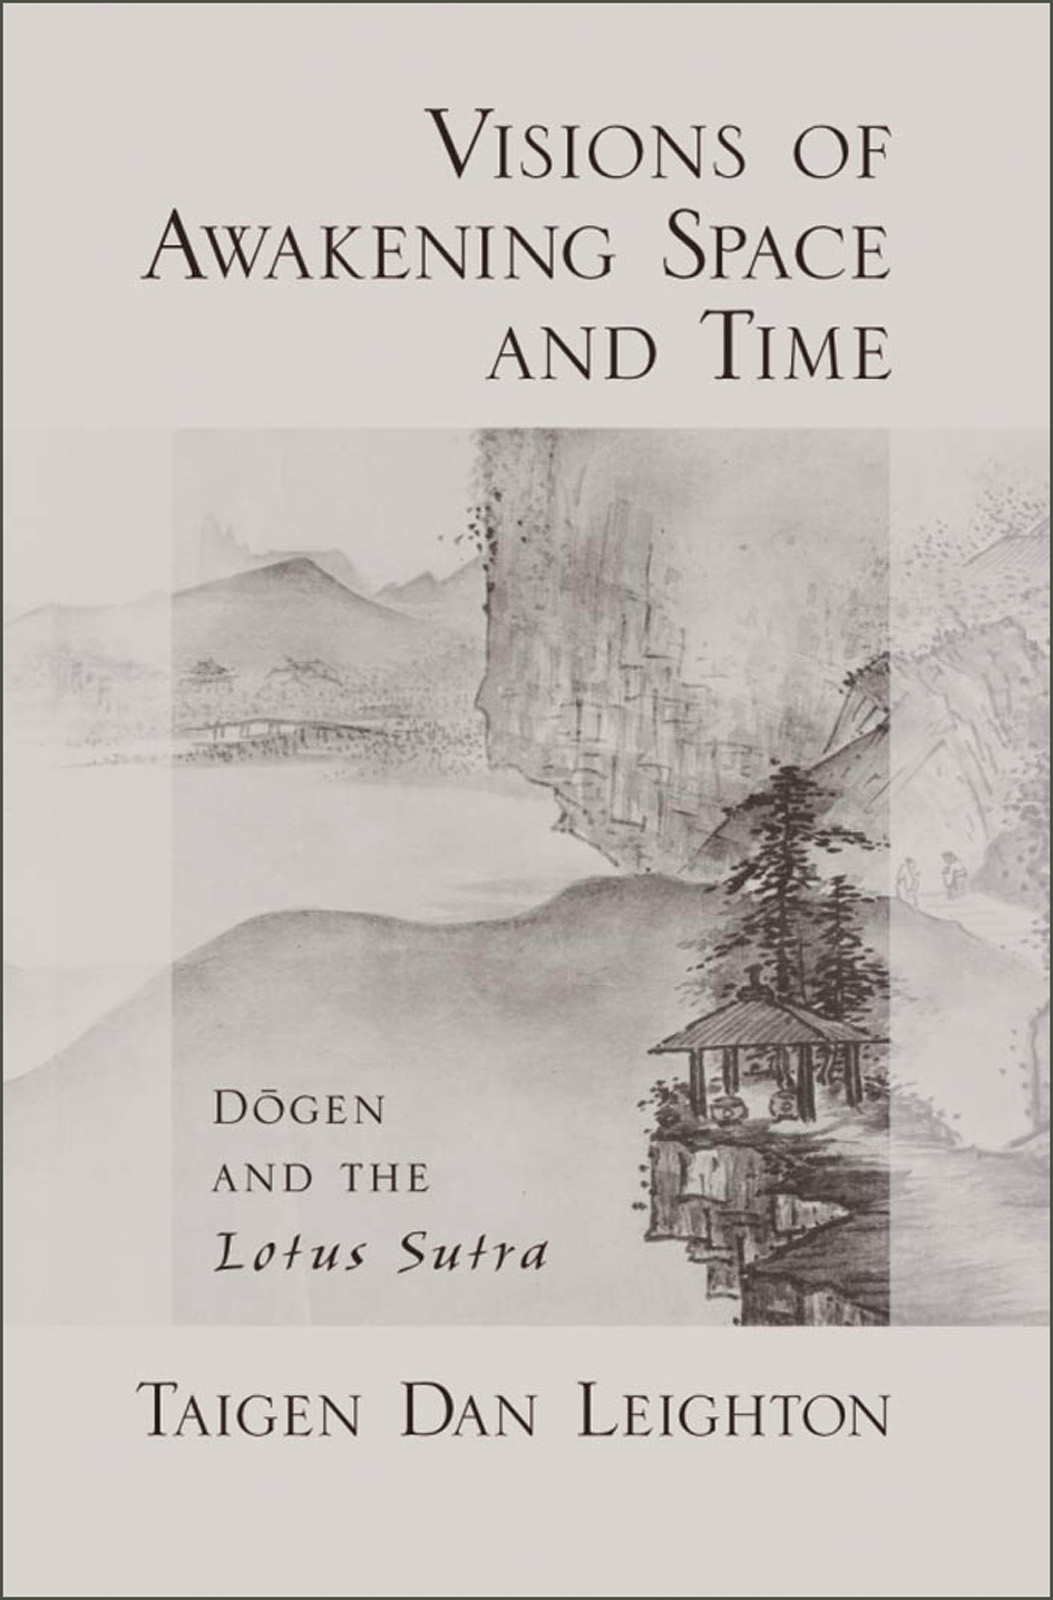 Visions of Awakening Space and Time: Dogen and the Lotus Sutra